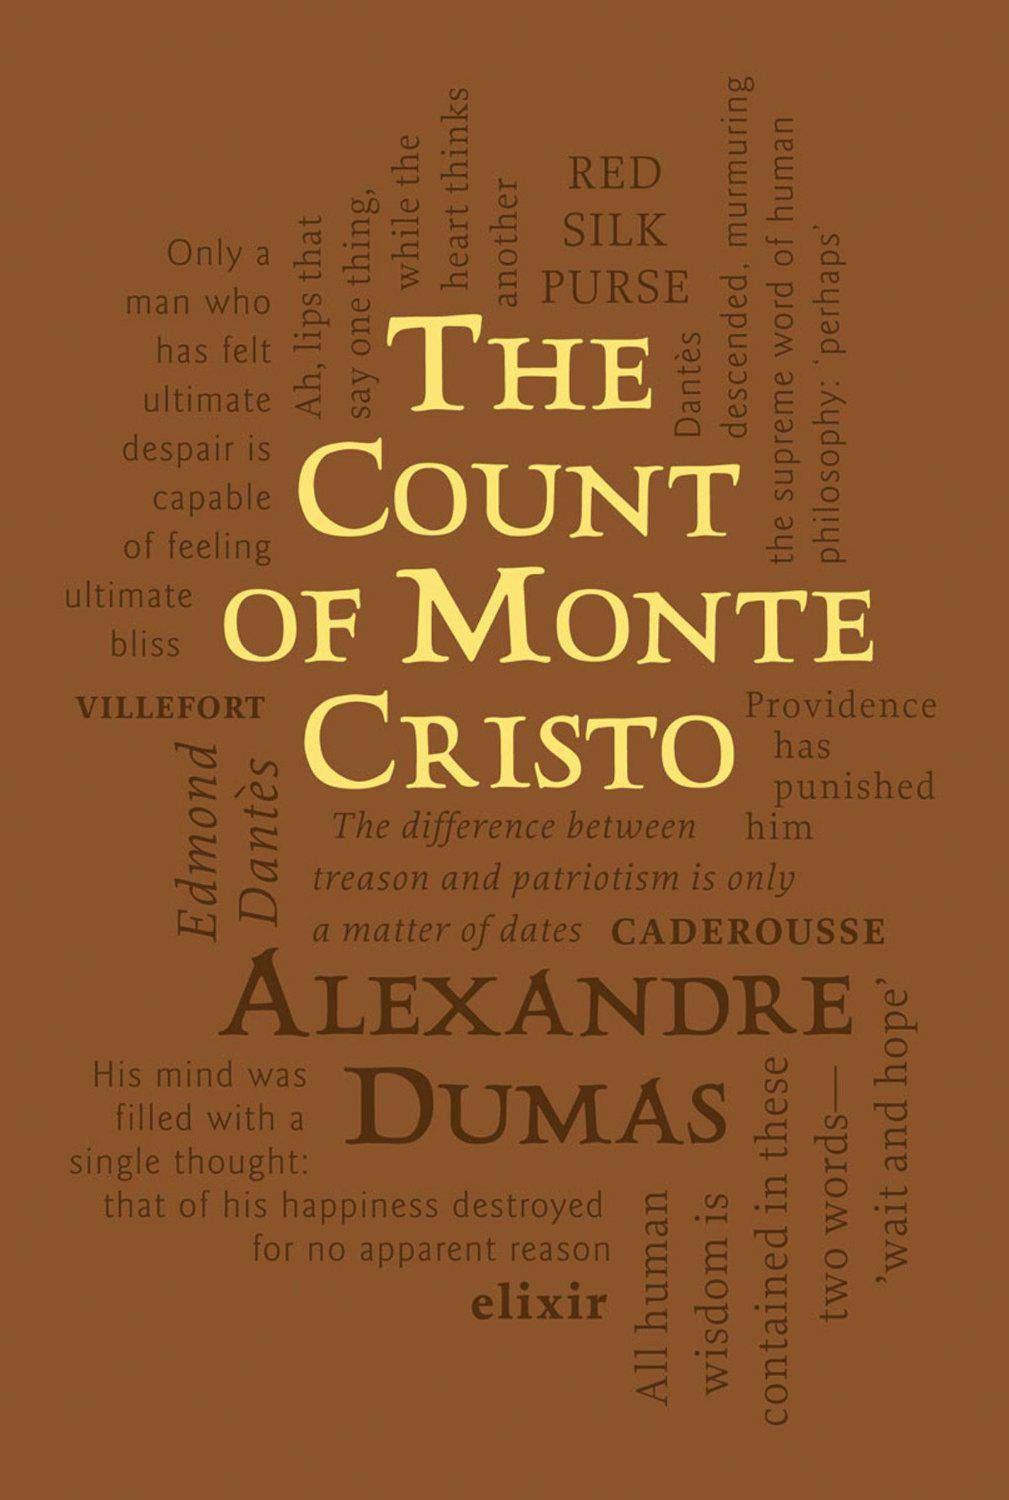 The Count of Monte Cristo Word Cloud